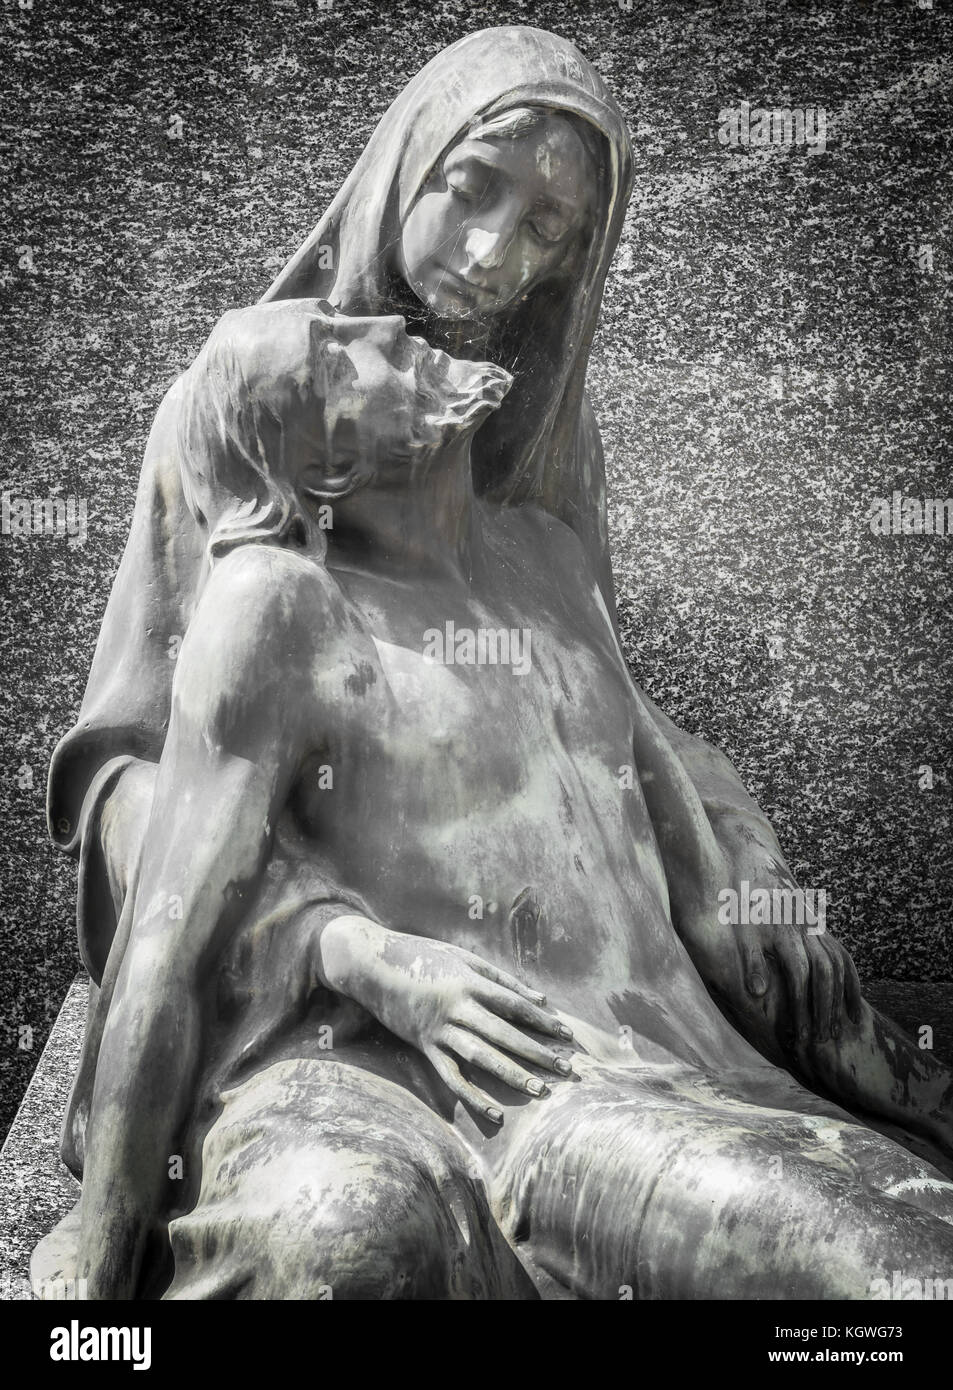 Marble statue representing the pity of Christ - Stock Image